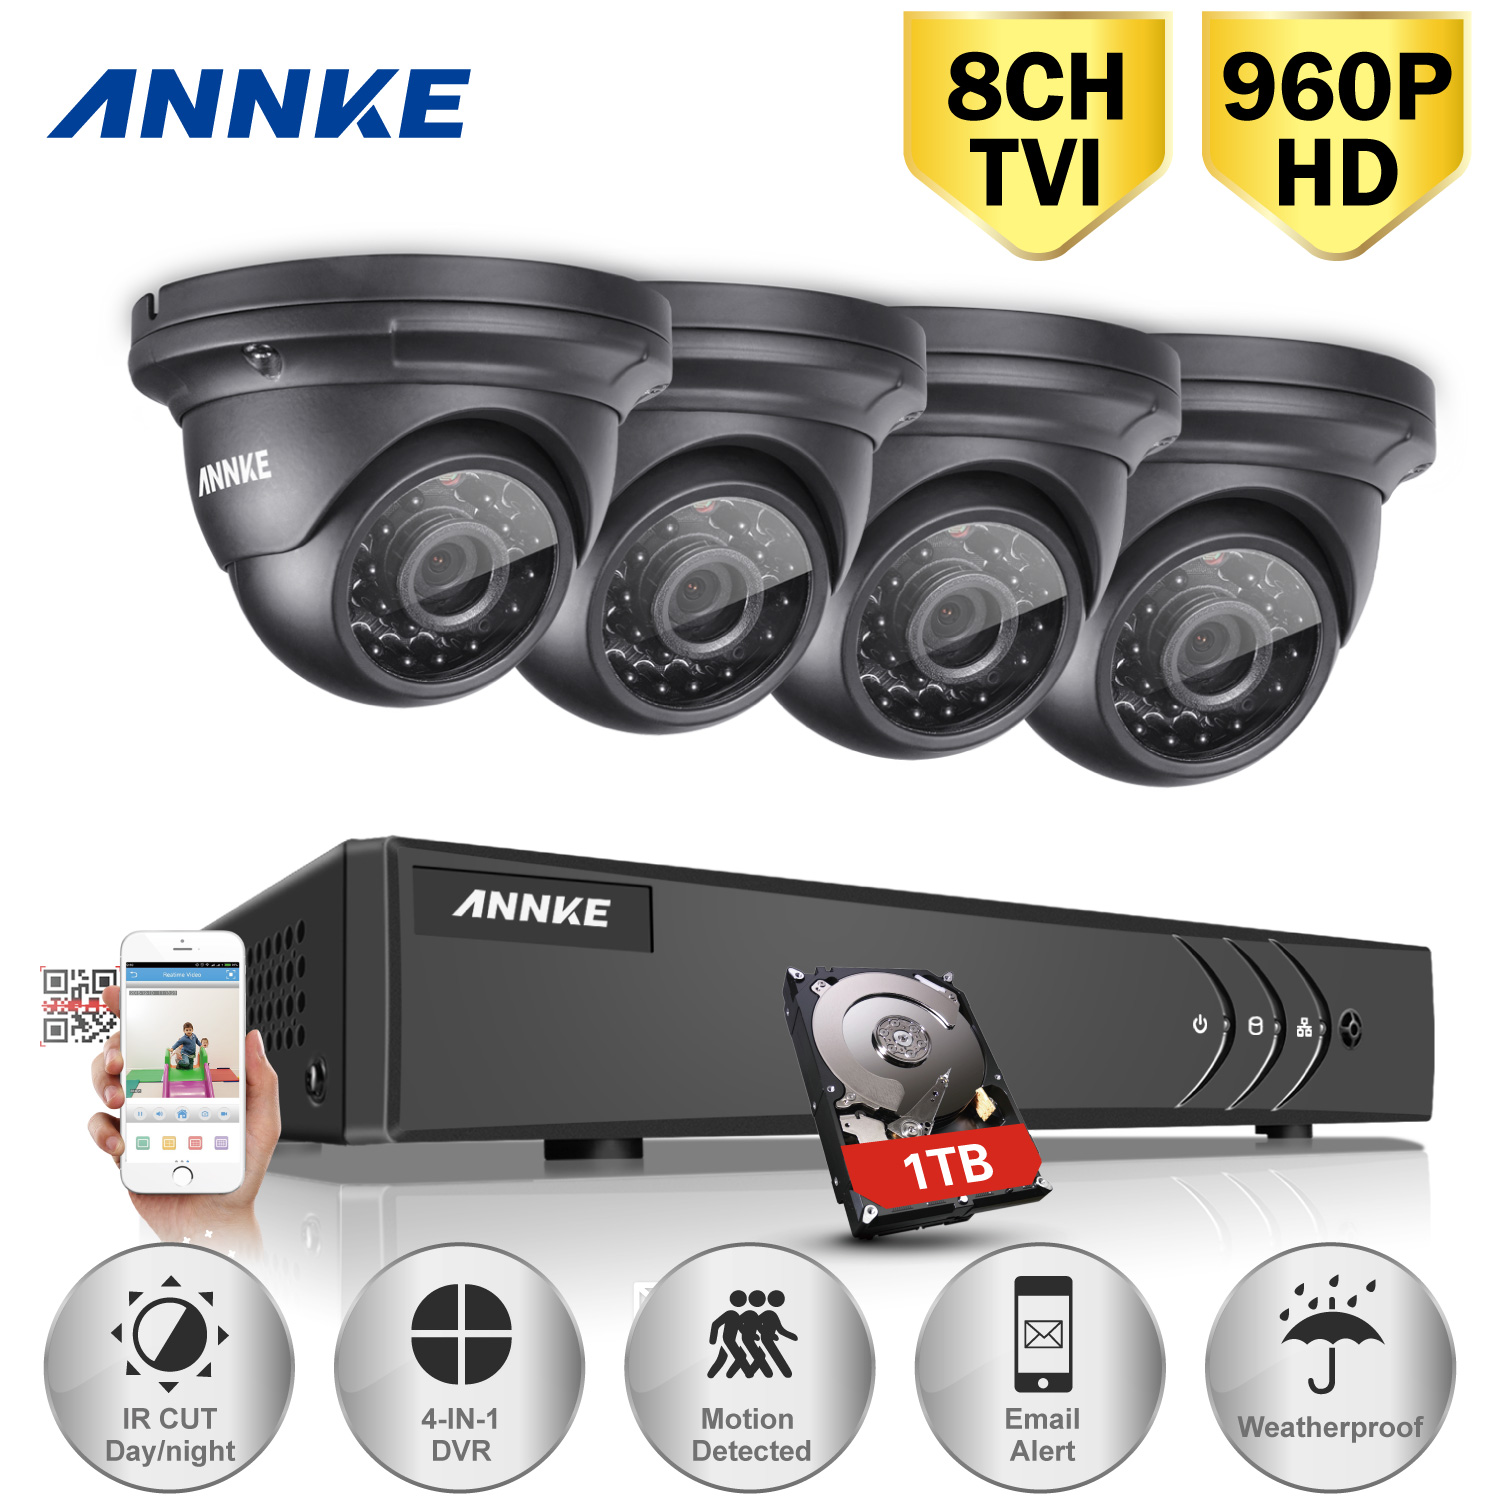 ANNKE 8CH 1080N CCTV DVR Security Camera System and 4Pcs 960P Night Vision Surveillance Cameras Kit(Hard Drive Capacity is optional:0-NO HDD,1-1TB HDD)